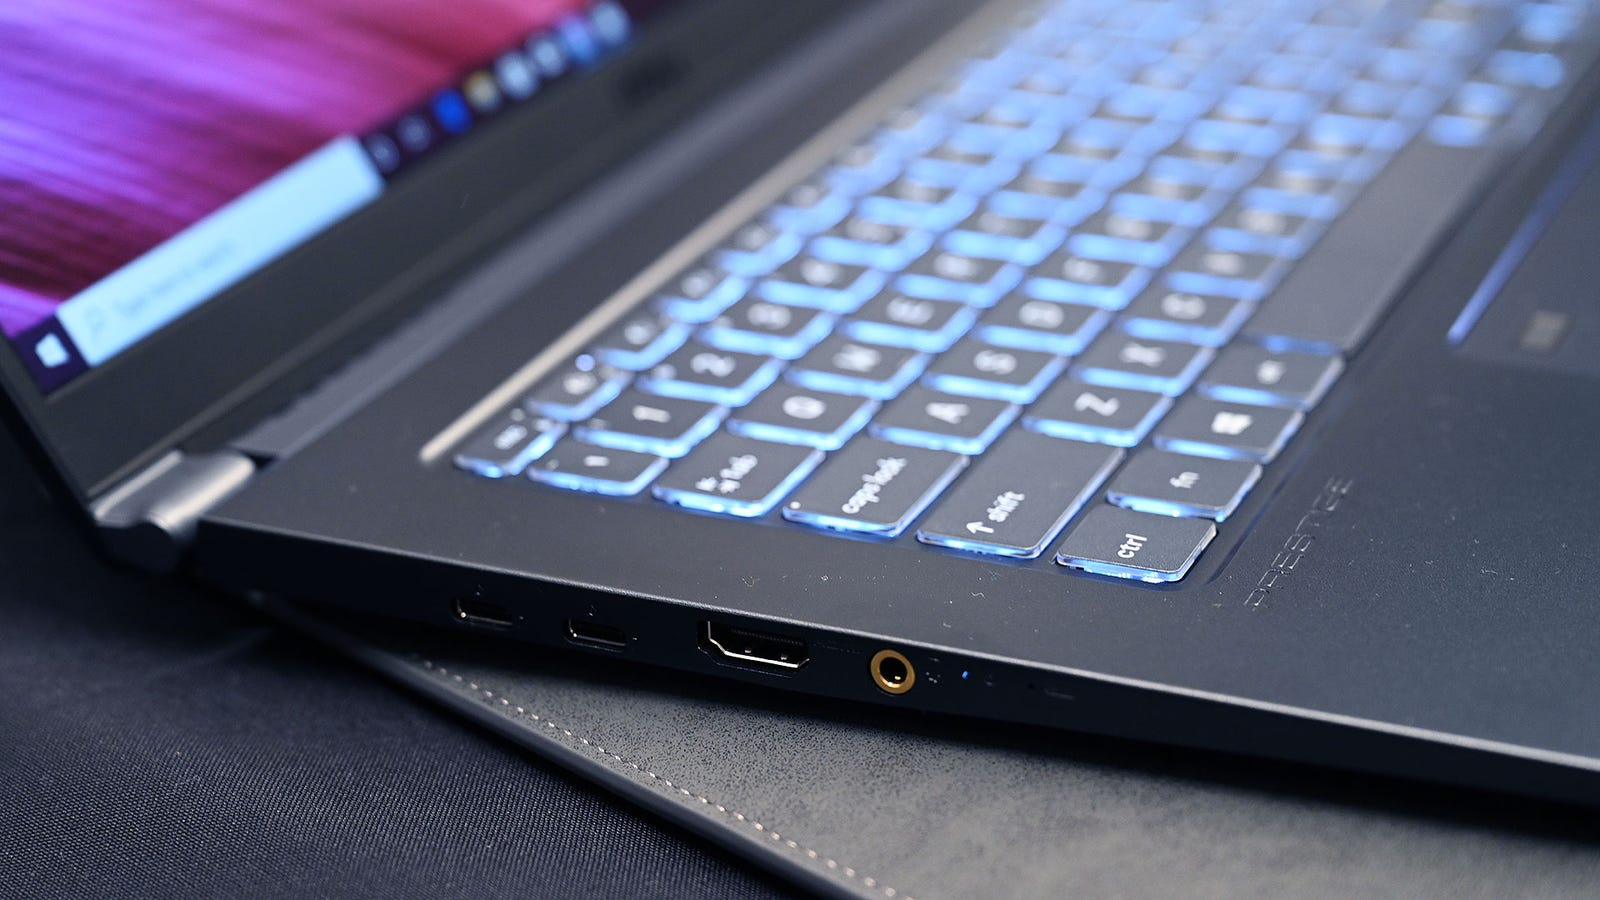 Including a full HDMI out port is a nice addition for on-the-go creatives too.